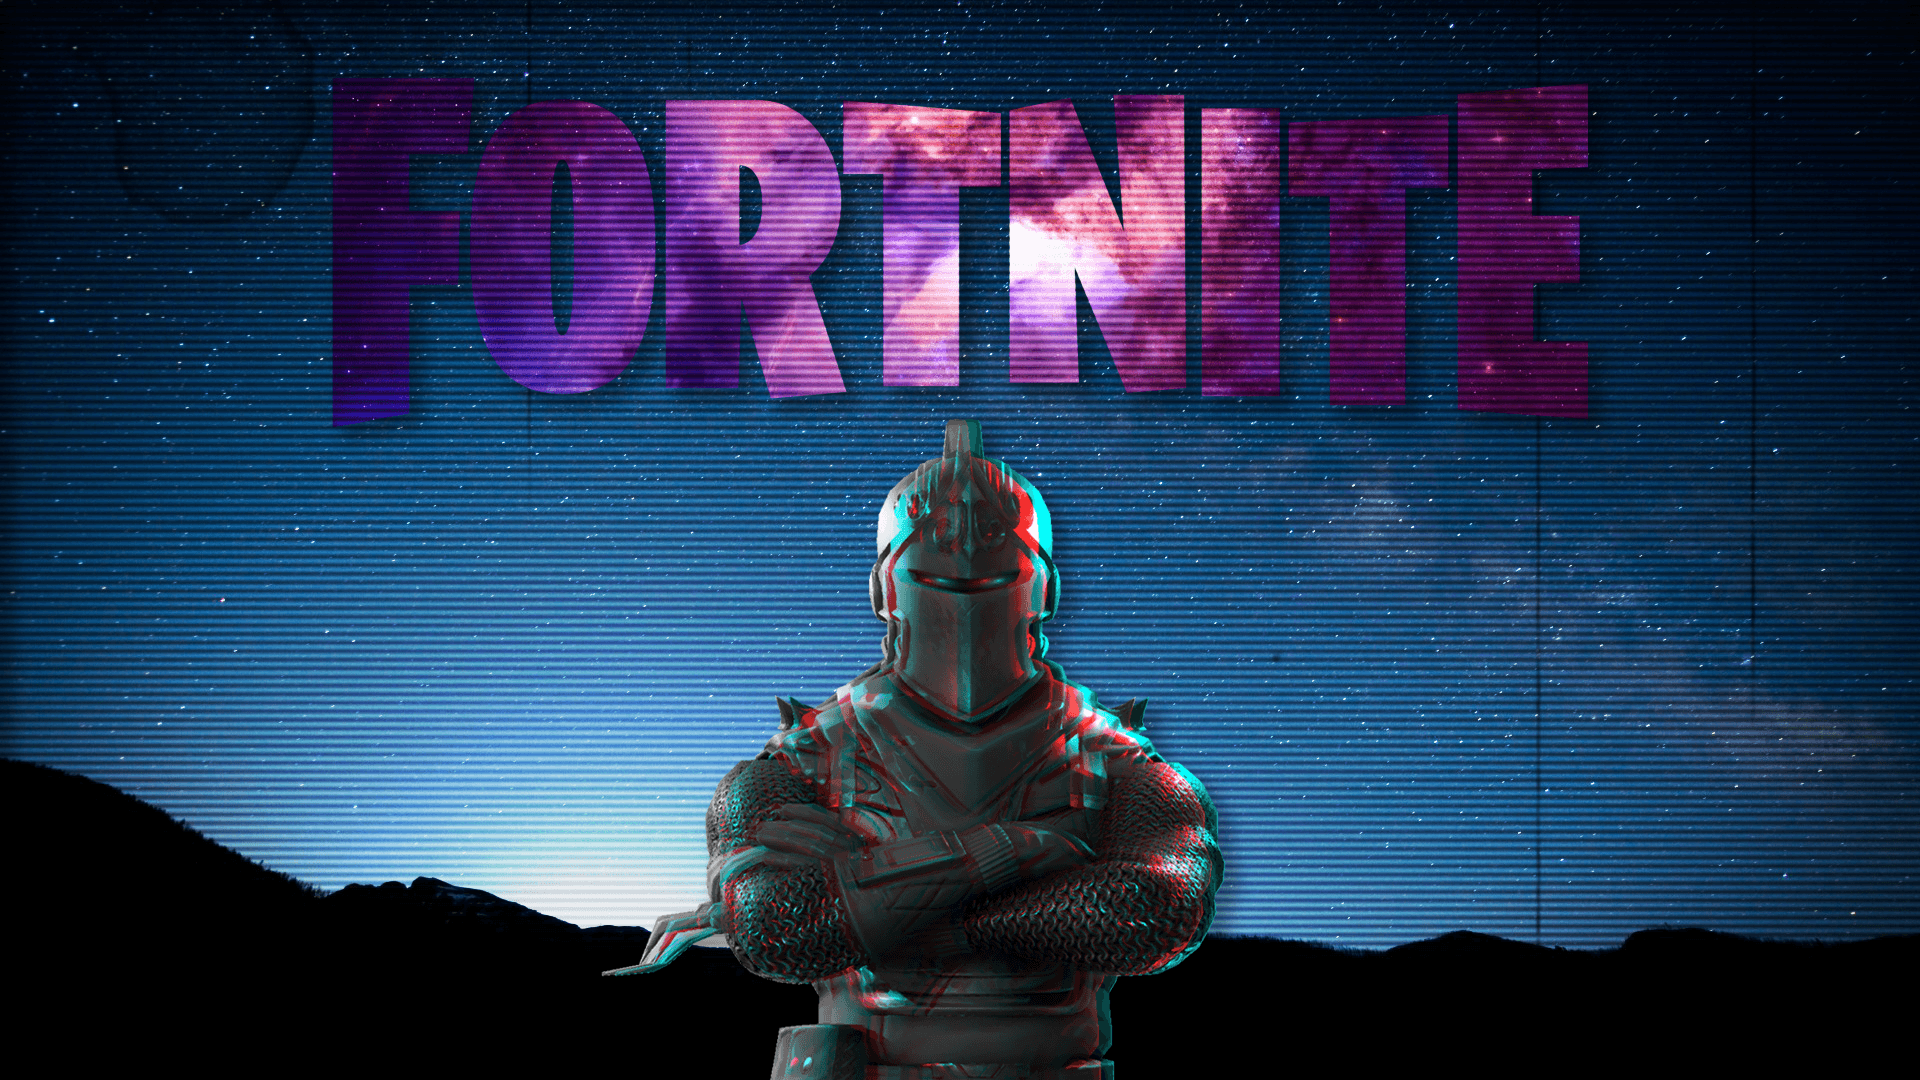 Nice Pin By Charlie Woodcock On Fortnite In 2018 | Pinterest | Wallpaper .